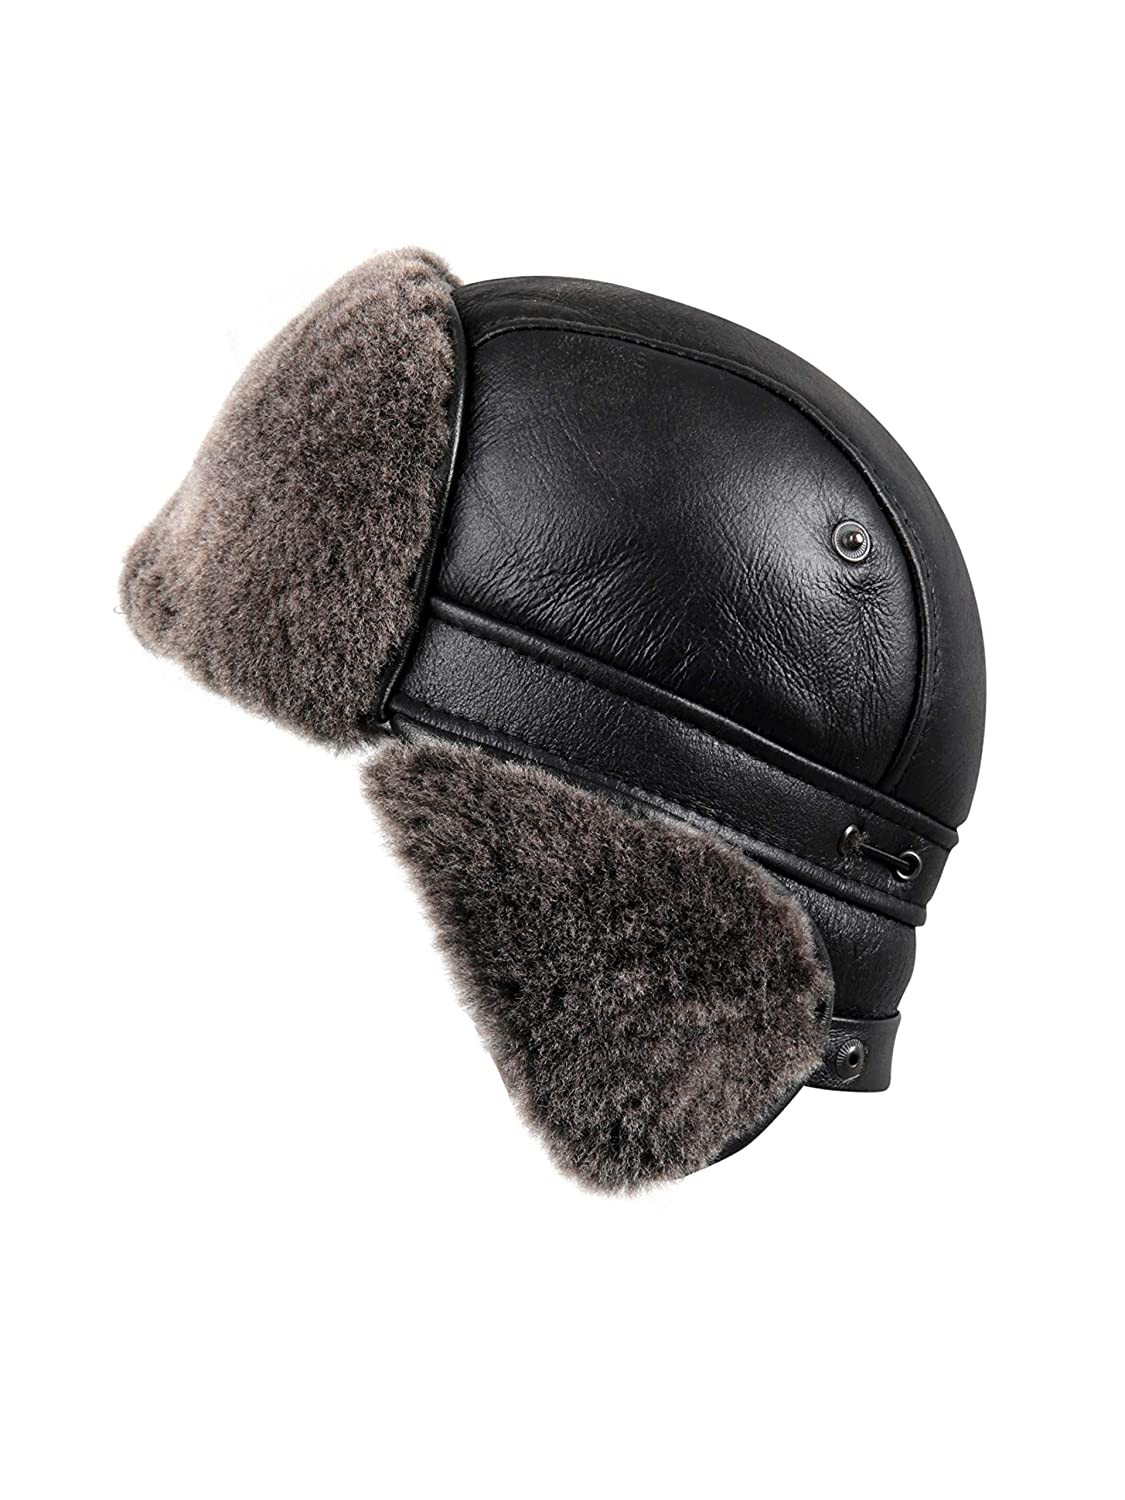 68782ca6aab3c6 Zavelio Unisex Shearling Sheepskin Aviator Russian Ushanka with Snap Hat:  Amazon.ca: Sports & Outdoors